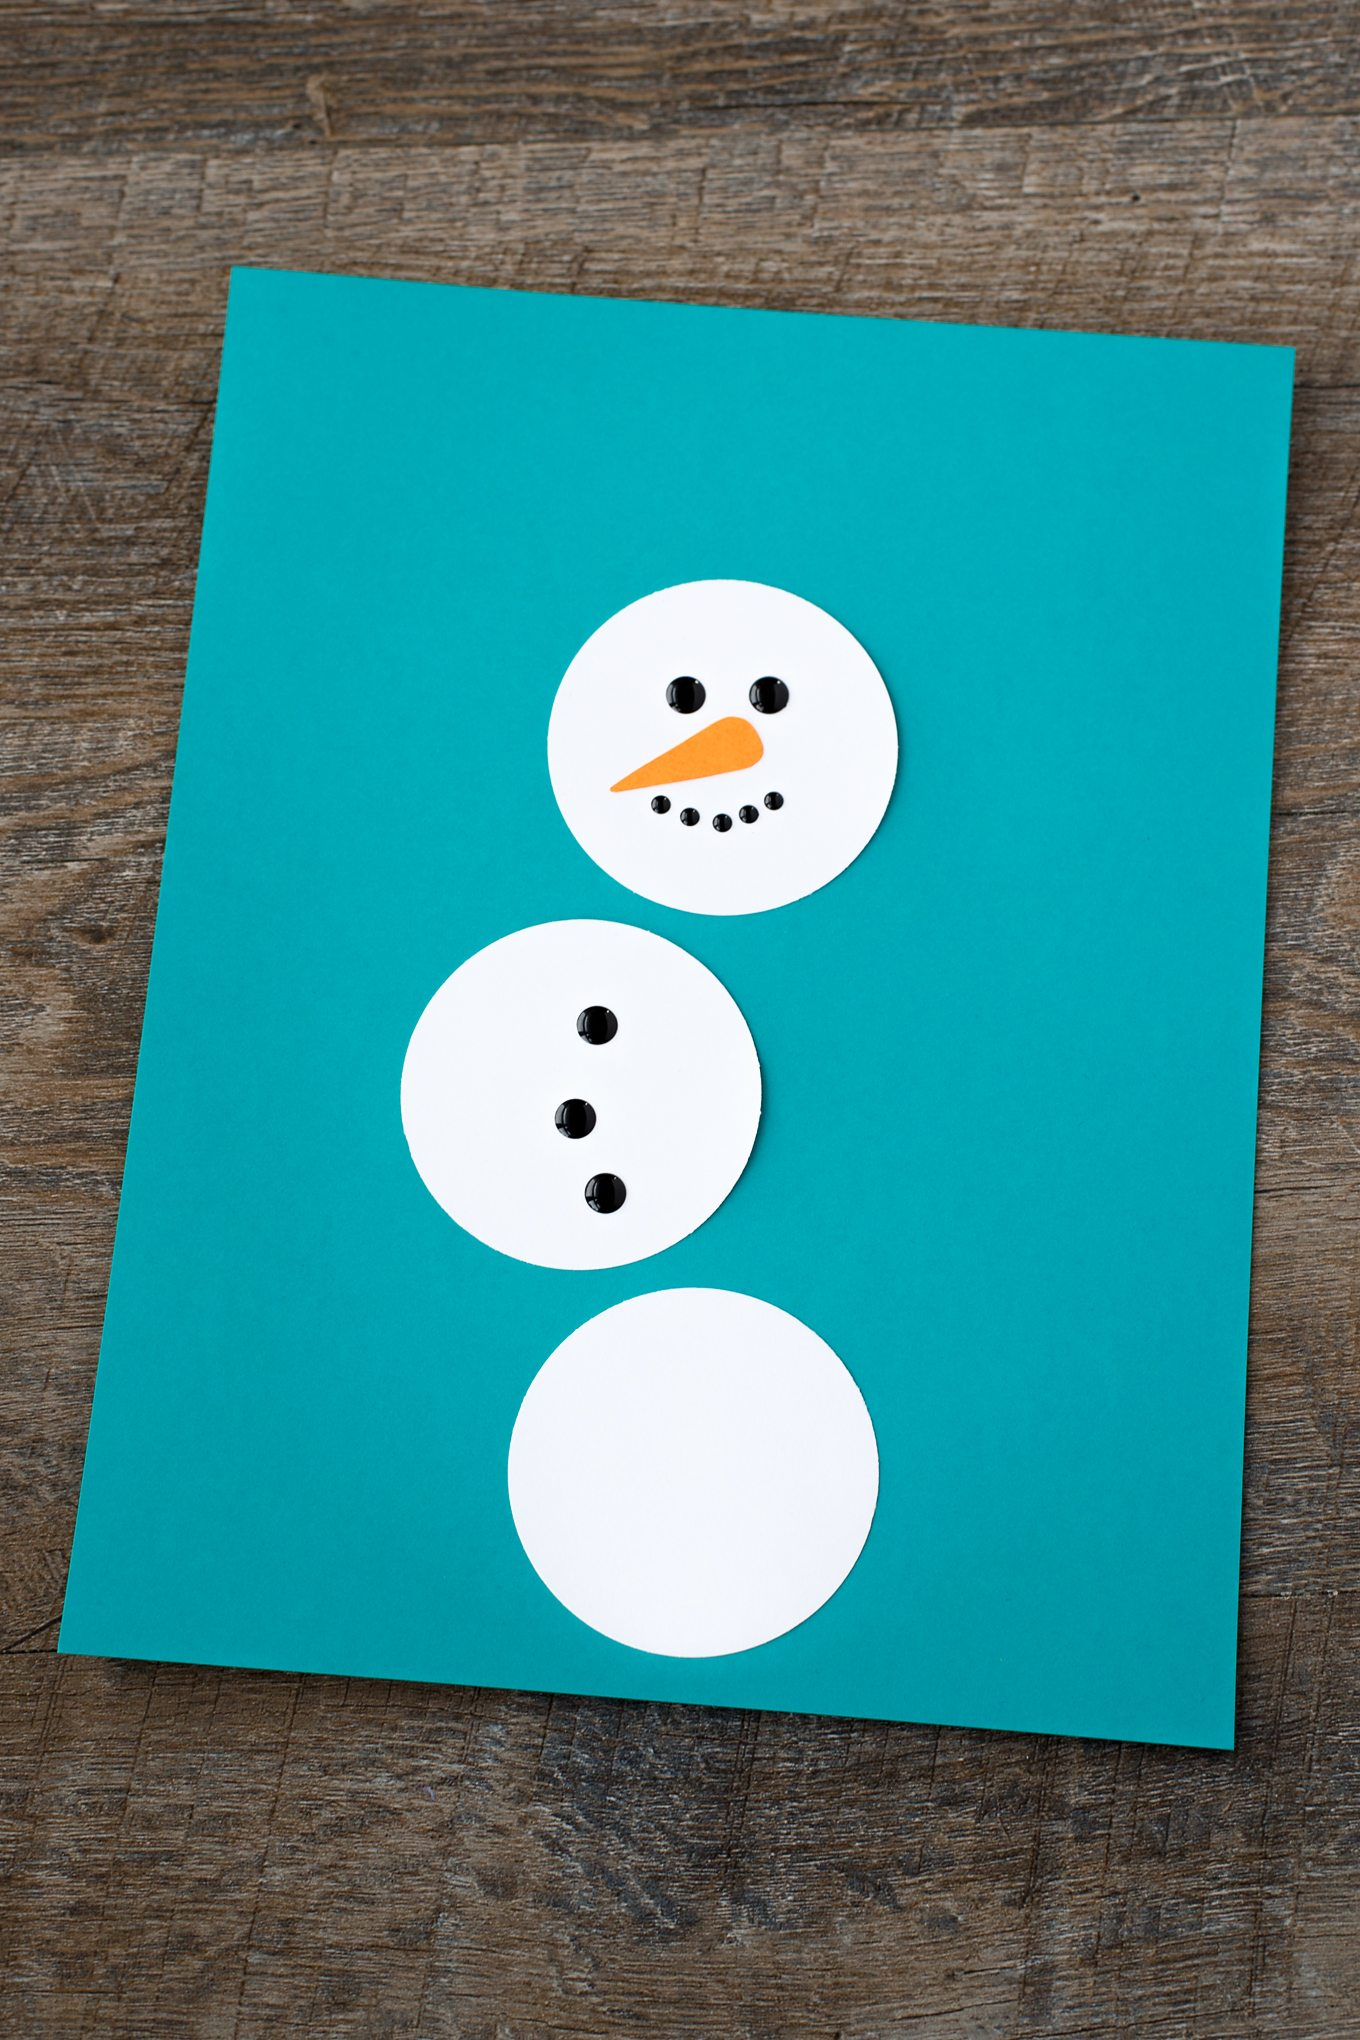 Winter is the perfect season for snowman crafts! Whether kids are learning about snow and snowflakes or simply enjoying a winter craft at home, this open-ended paper snowman craft is a fun way to extend your winter unit.